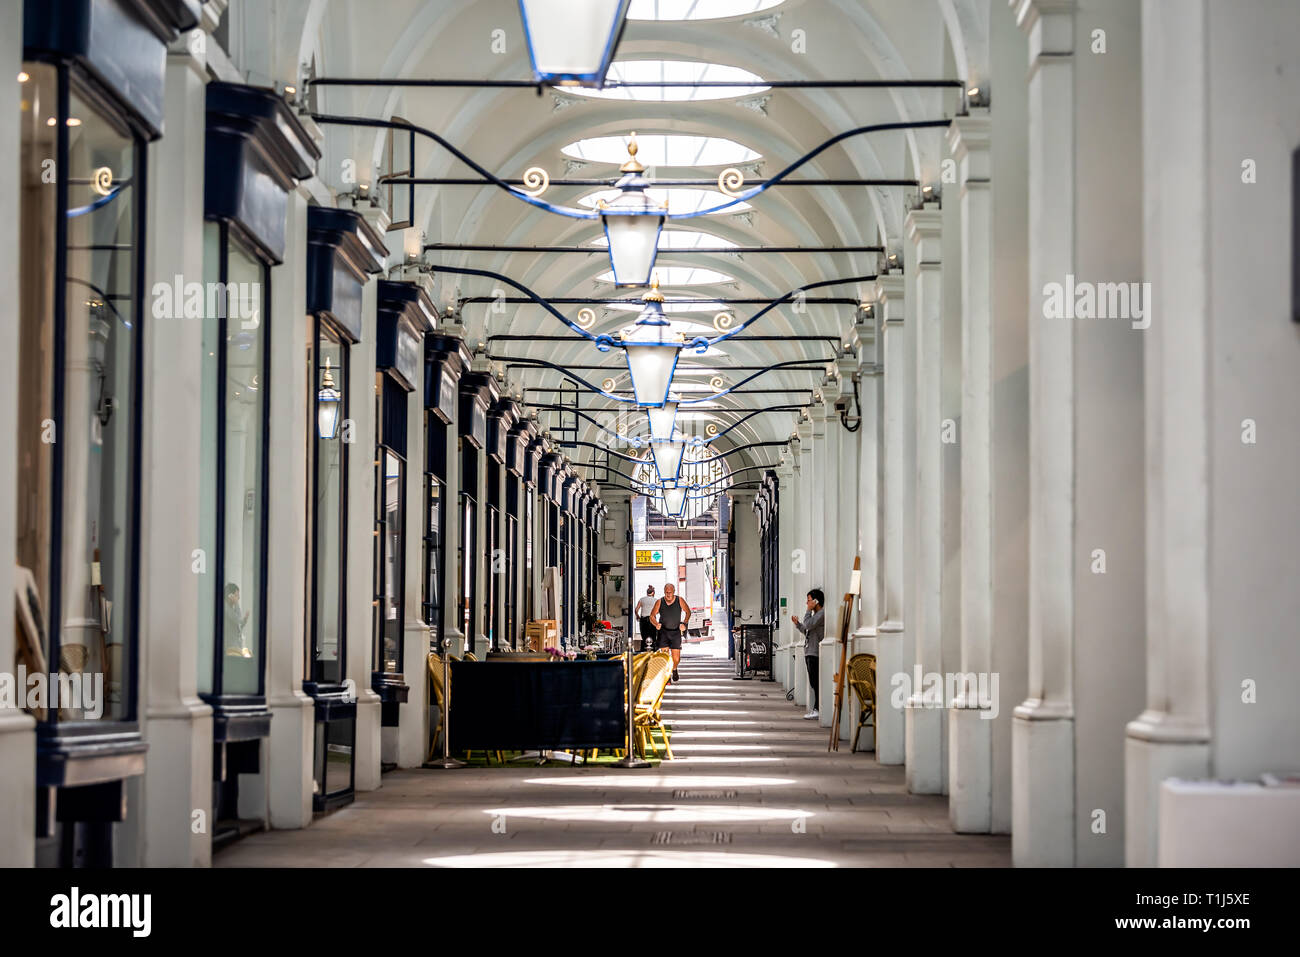 London, UK - June 22, 2018: Empty shopping shop passage tunnel with man exercising jogging on Piccadilly sidewalk street road in center of downtown ci - Stock Image